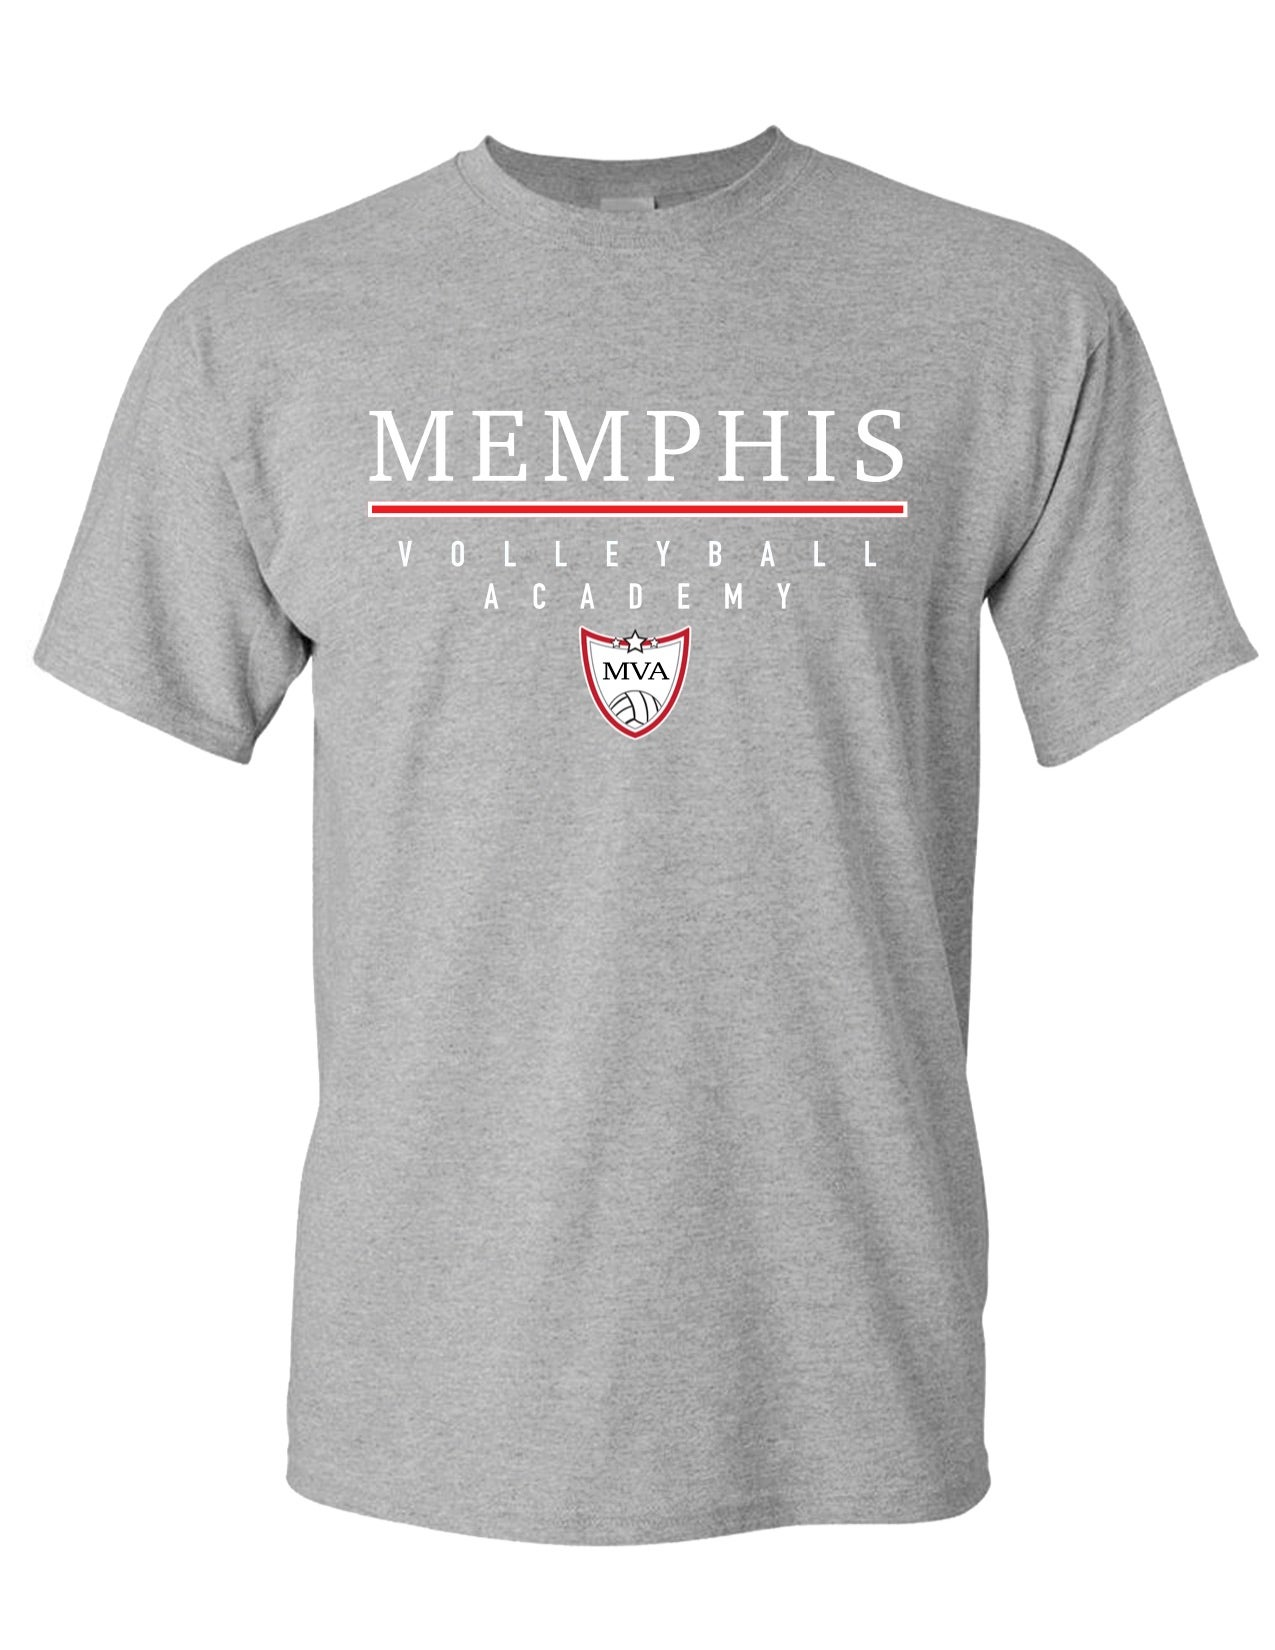 Image of Memphis Volleyball Academy Tee - (Multiple Color Options)